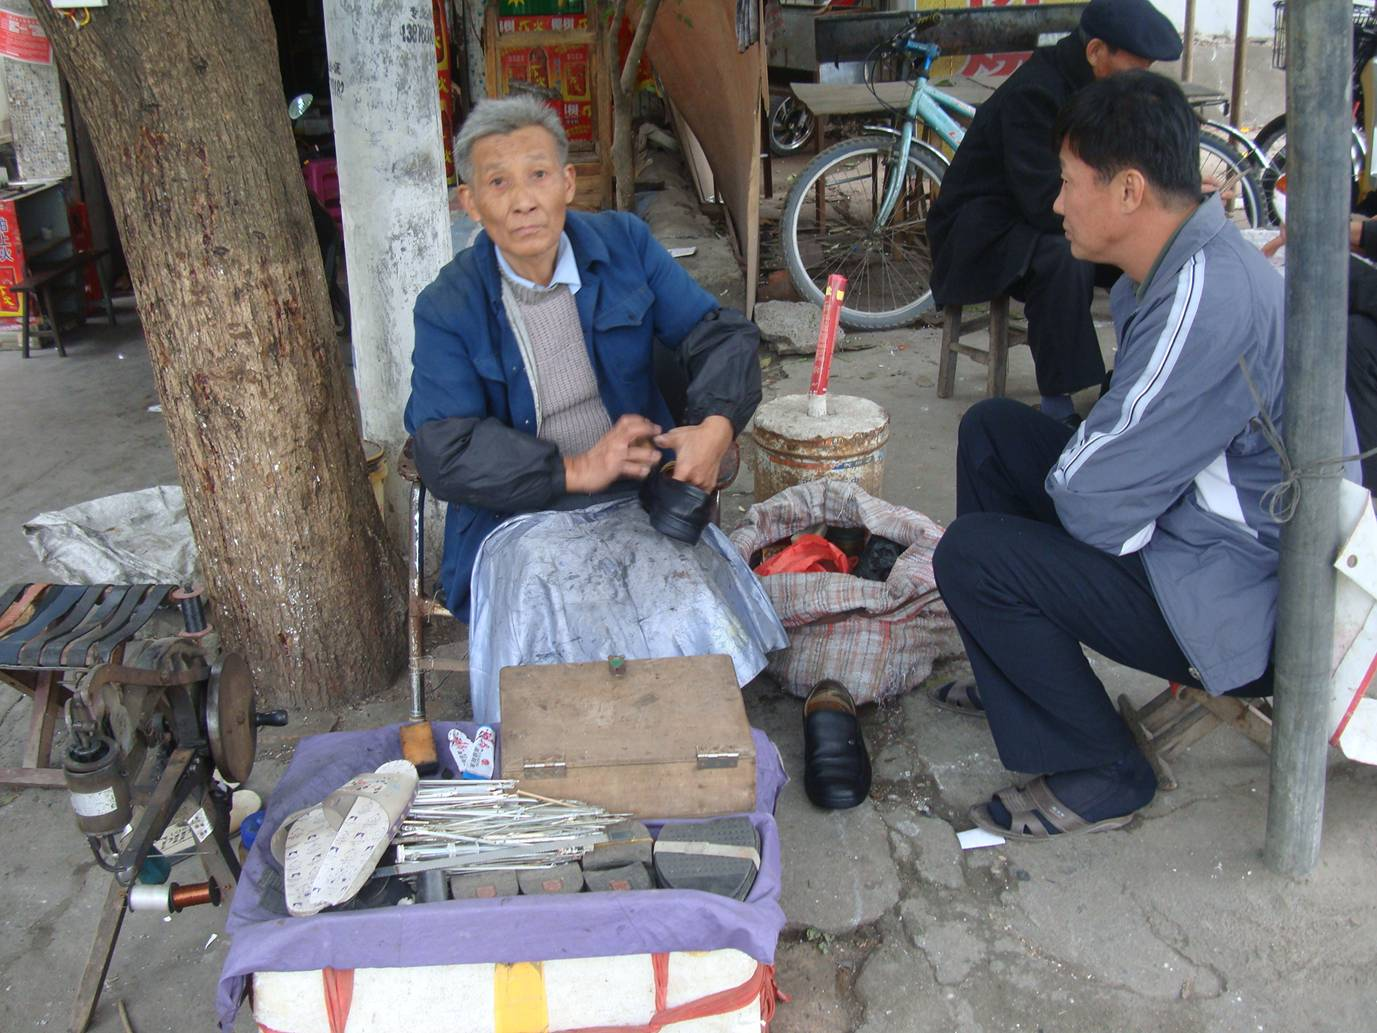 Picture:  Shoe repair and shoe shines on the streets of Haikou, Hainan Island, China